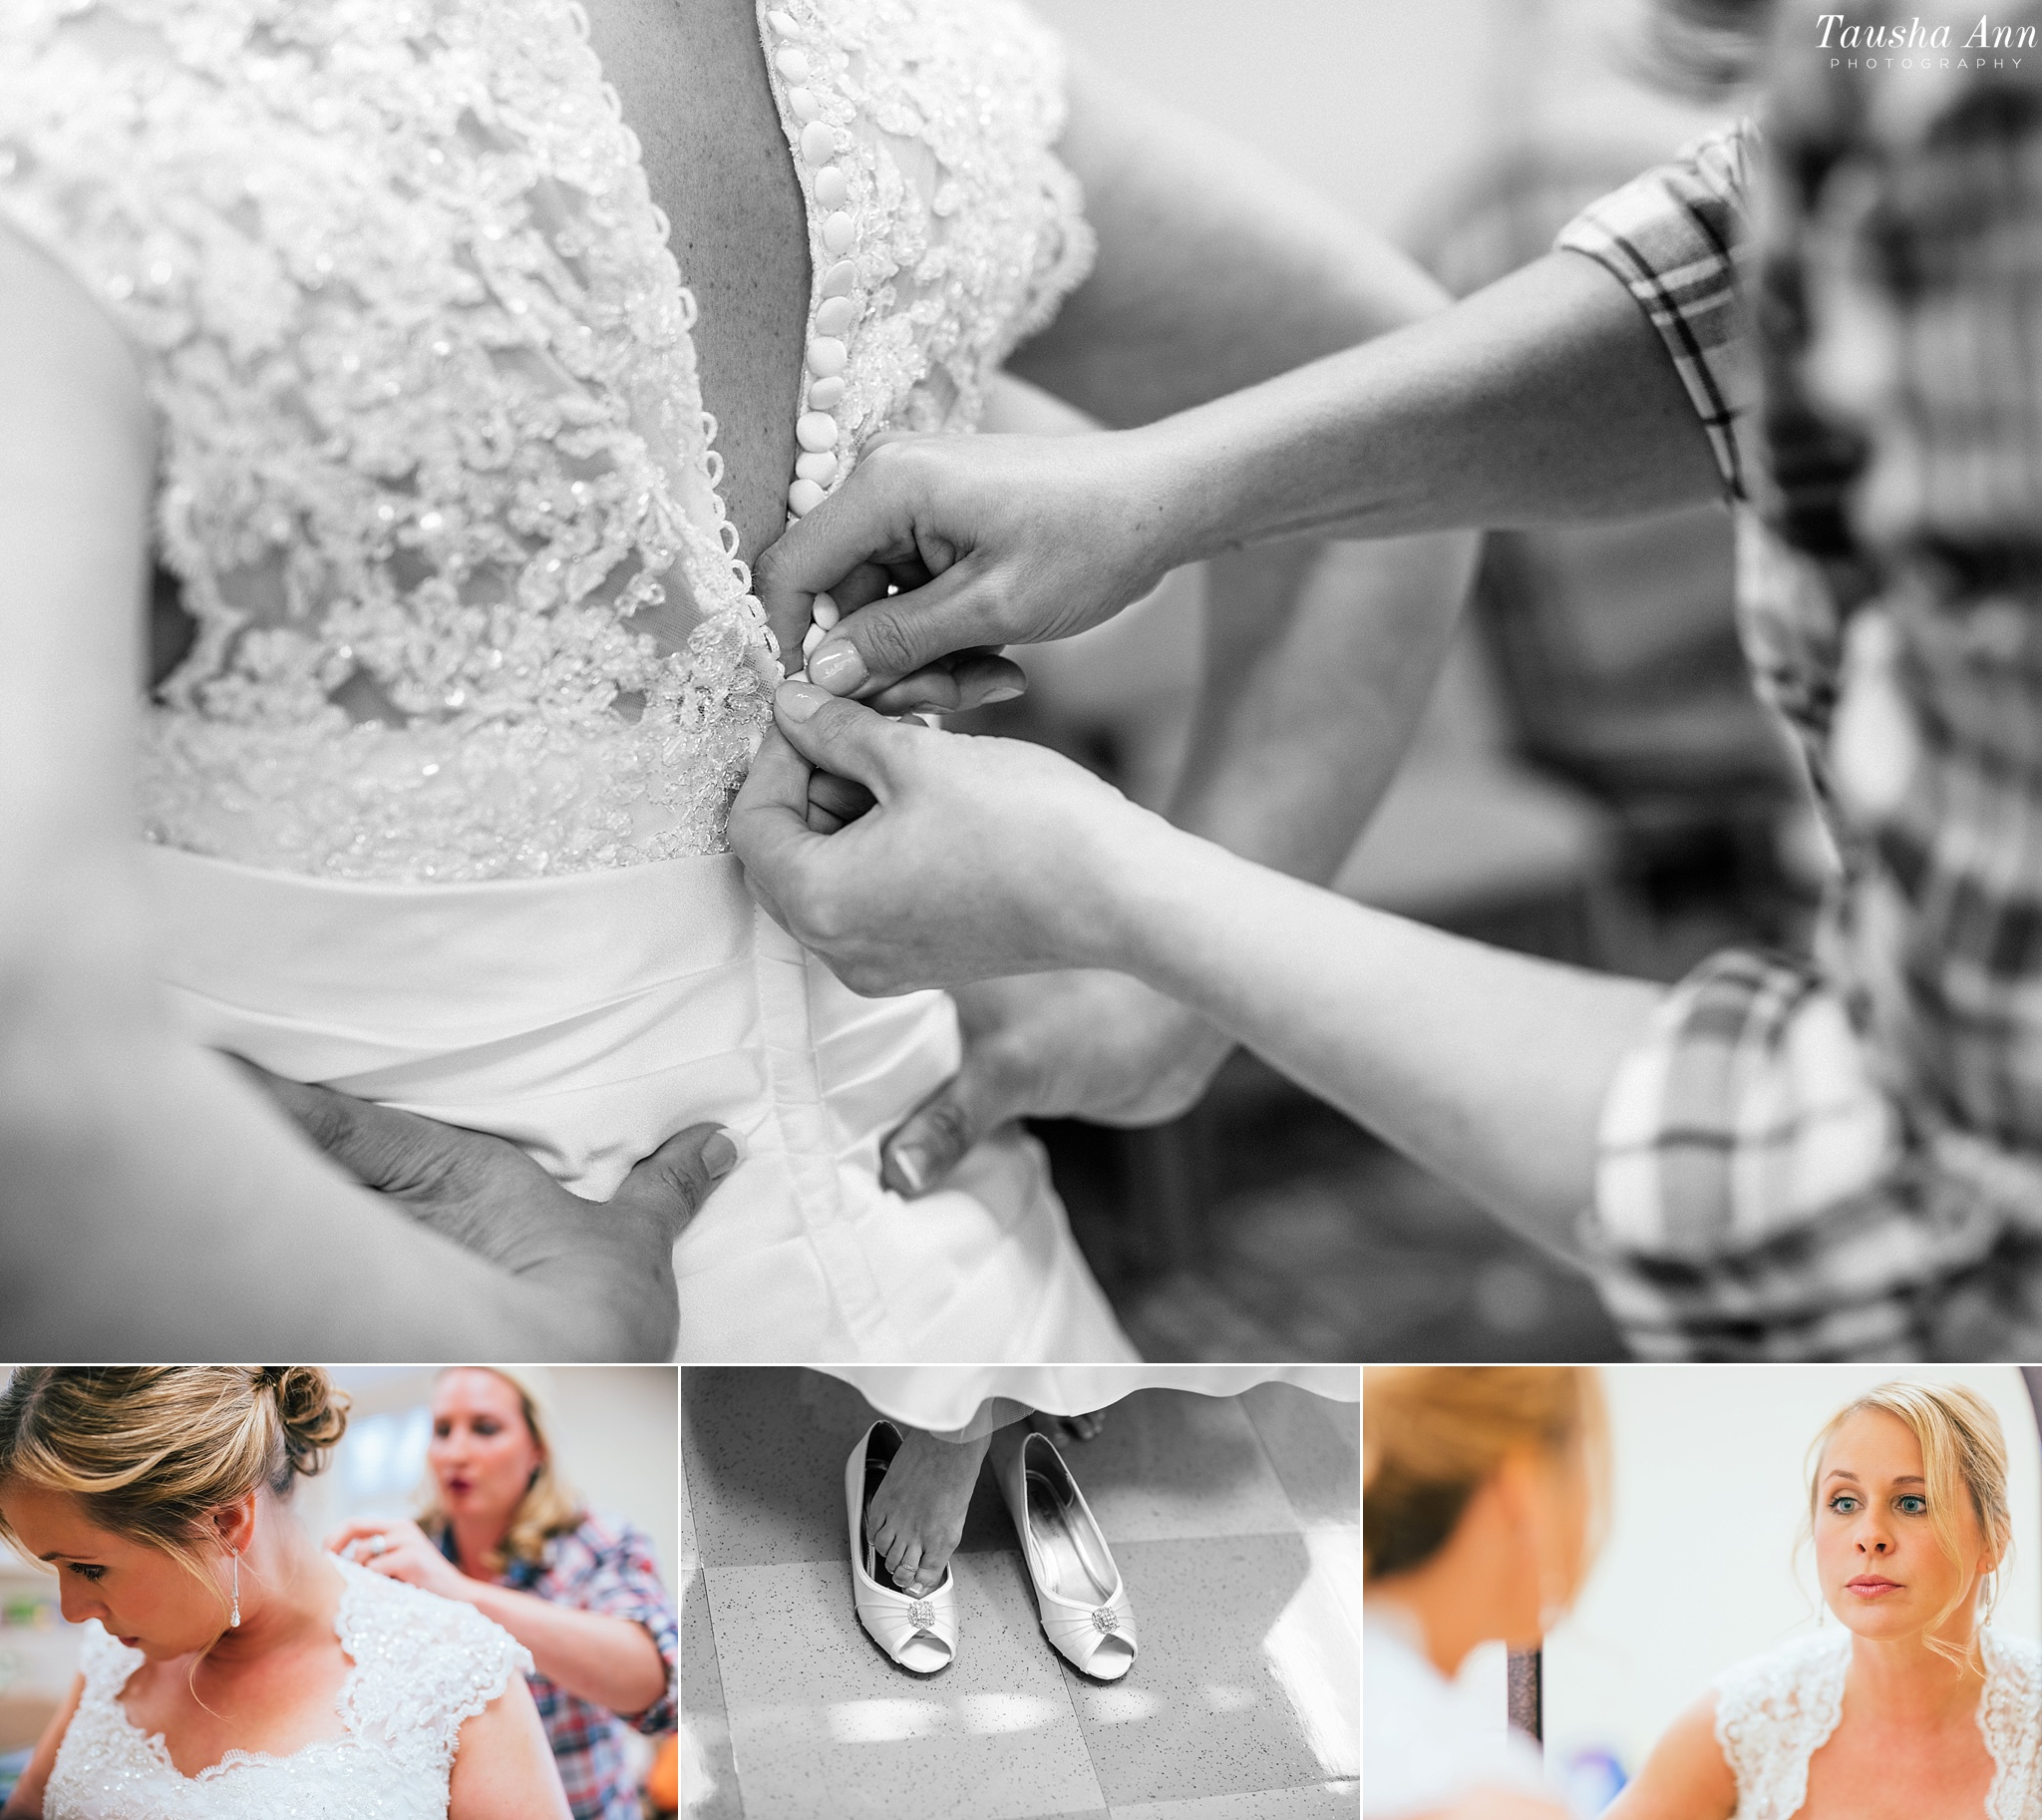 Buttoning up Bride wedding dress. Bride putting on shoes. Bride looking at herself in mirror.